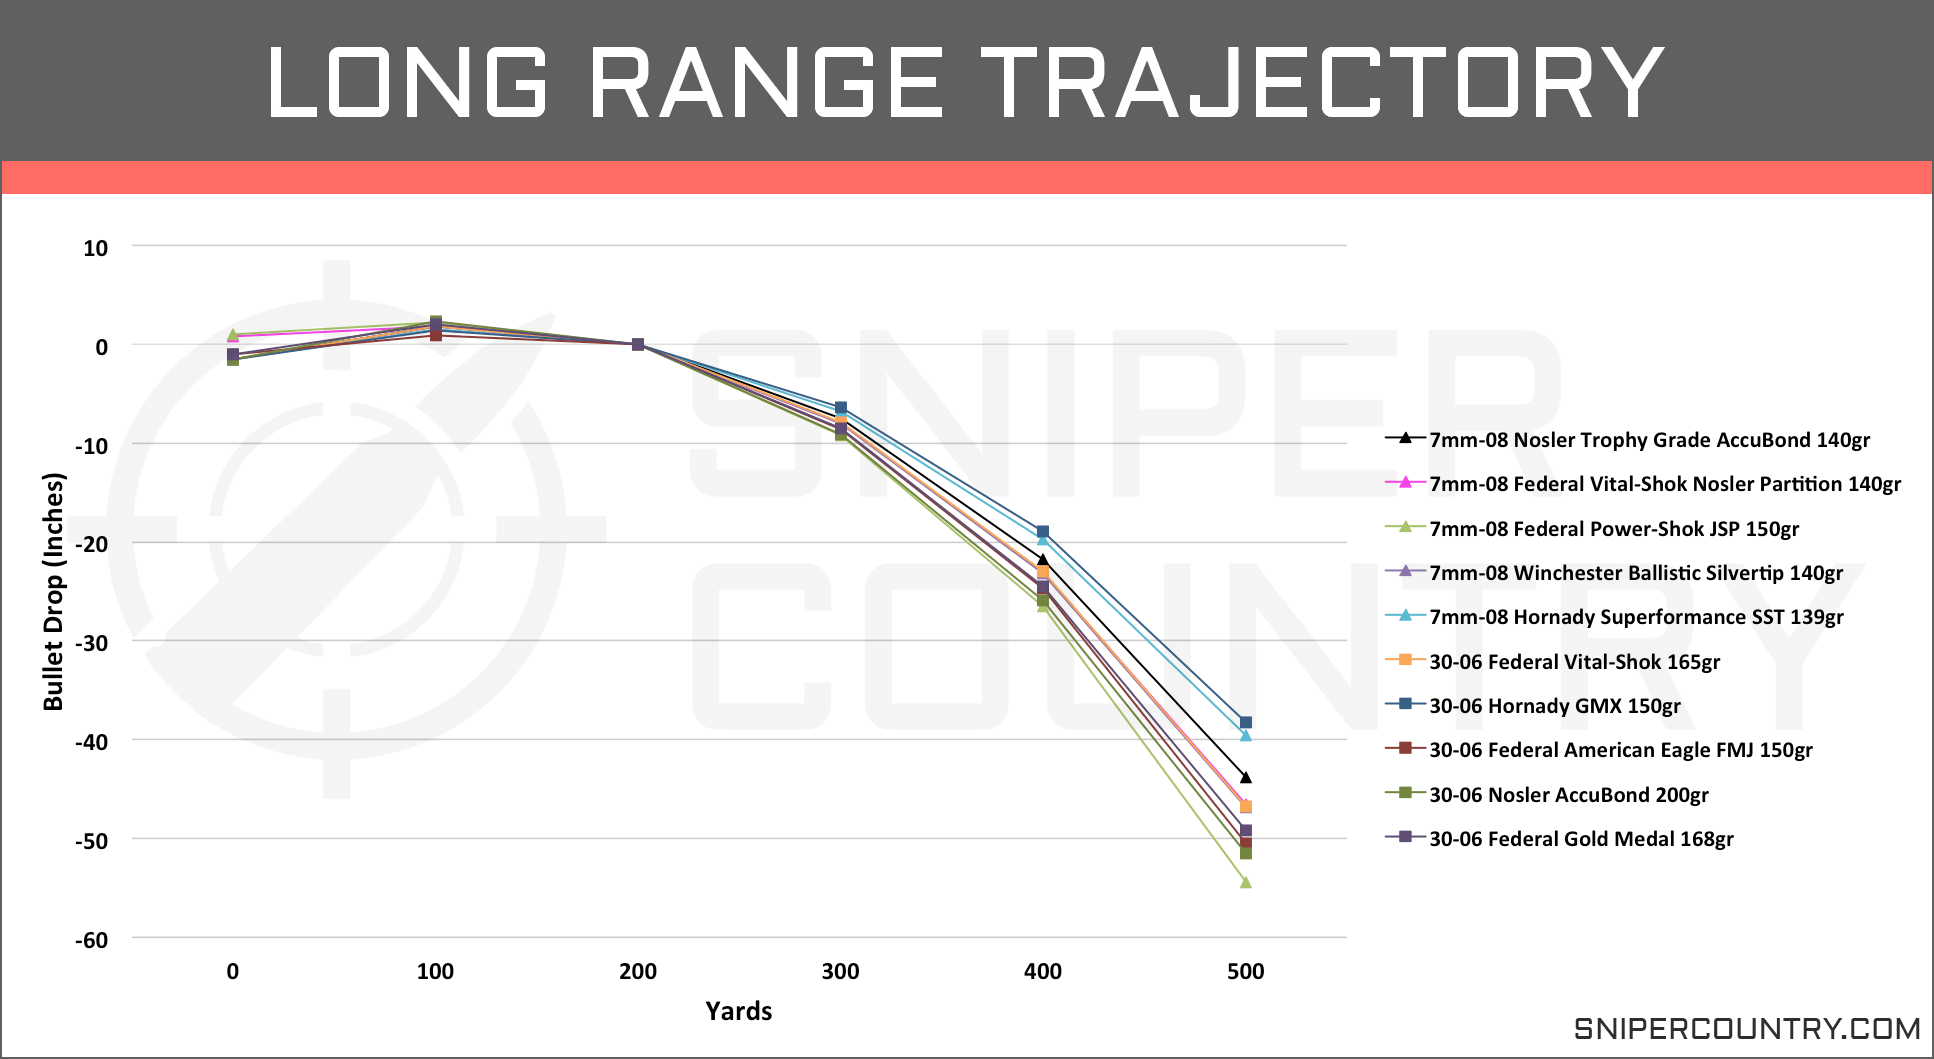 Long Range Trajectory 7mm-08 vs .30-06